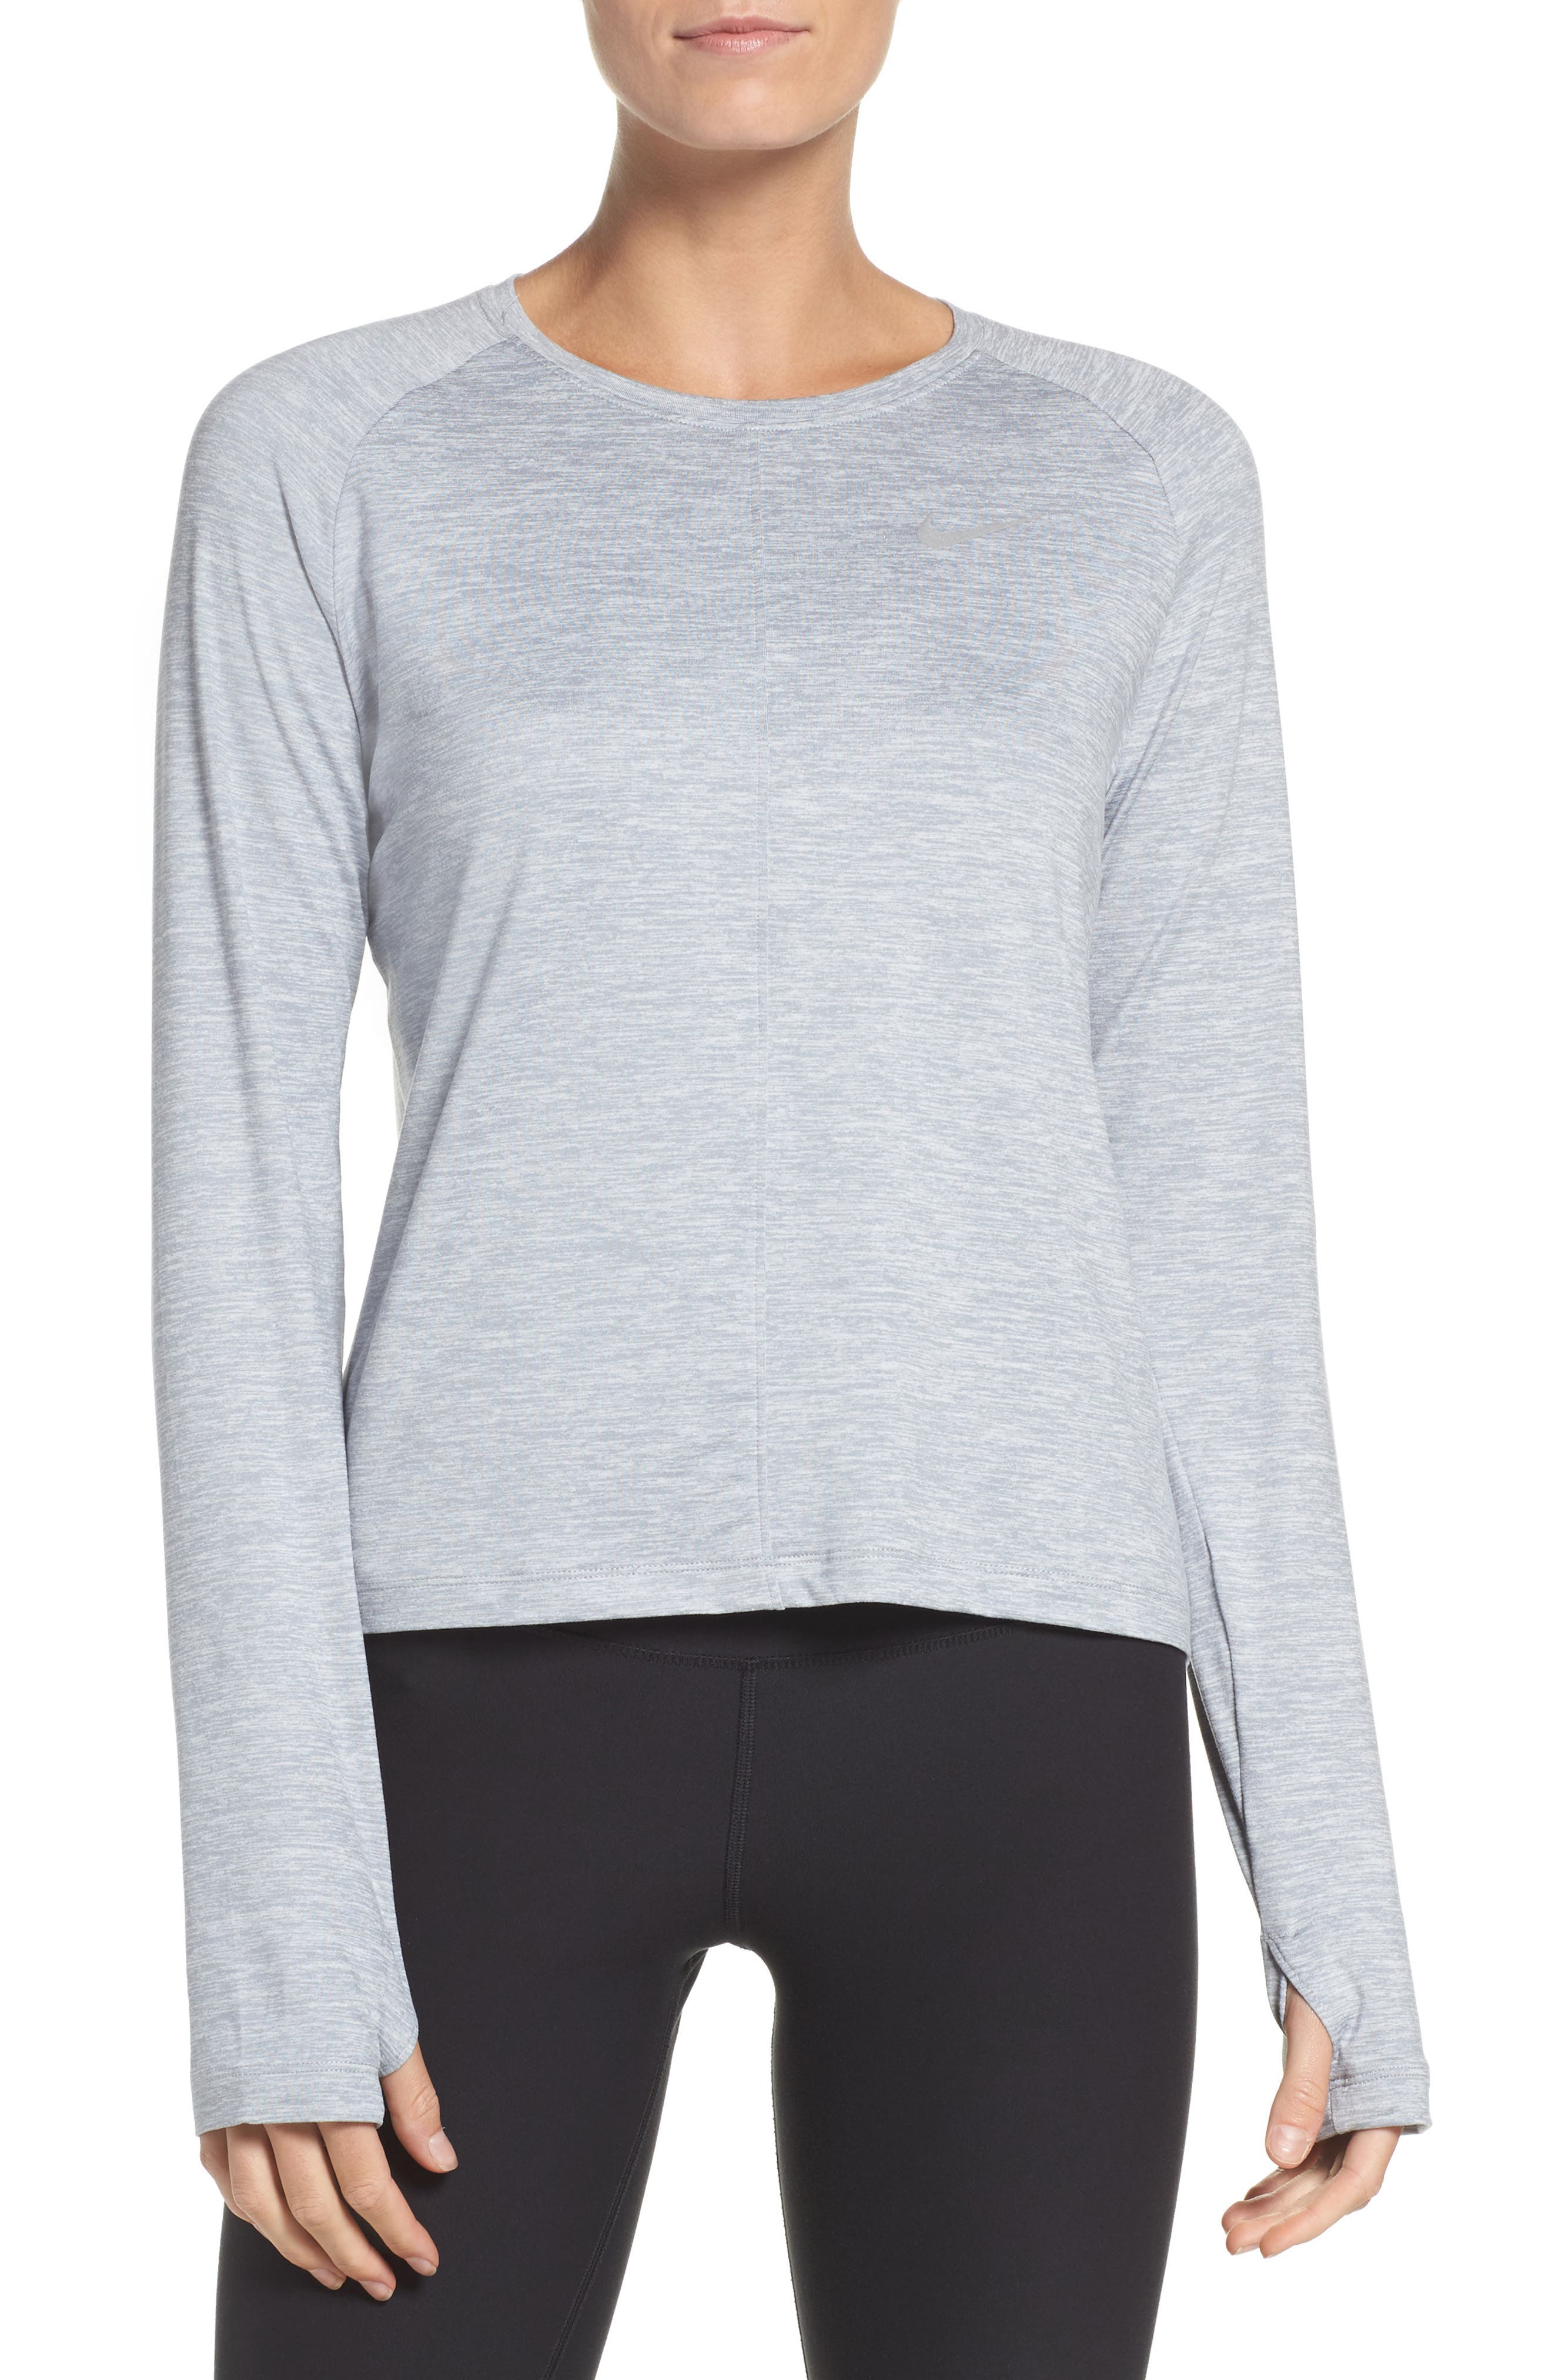 Dry Element Crop Top,                             Main thumbnail 1, color,                             Wolf Grey/ Heather